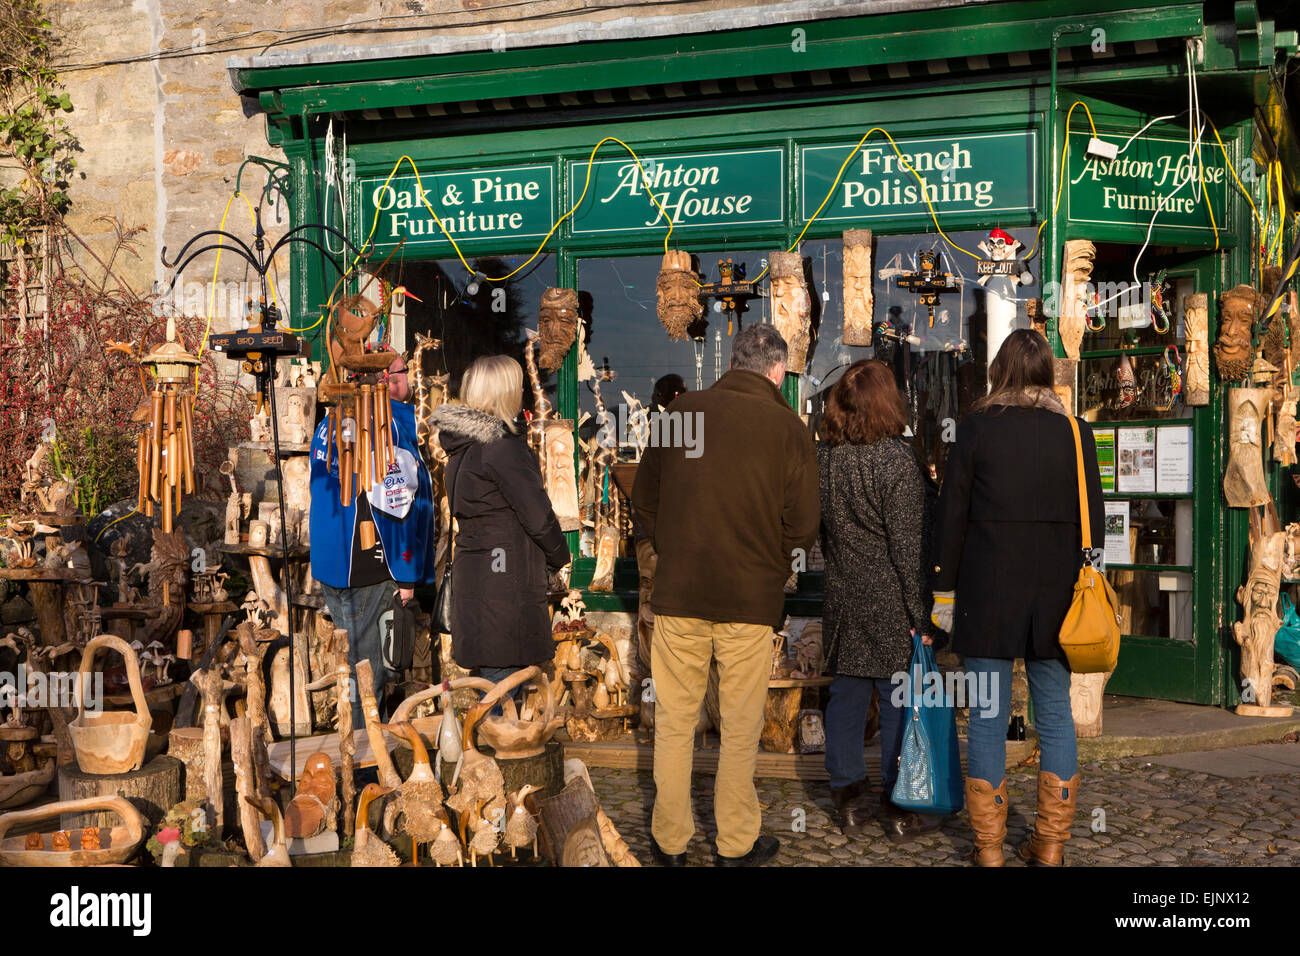 UK, England, Yorkshire, Grassington, Dickensian Festival, display of wooden gifts at Ashton House shop - Stock Image